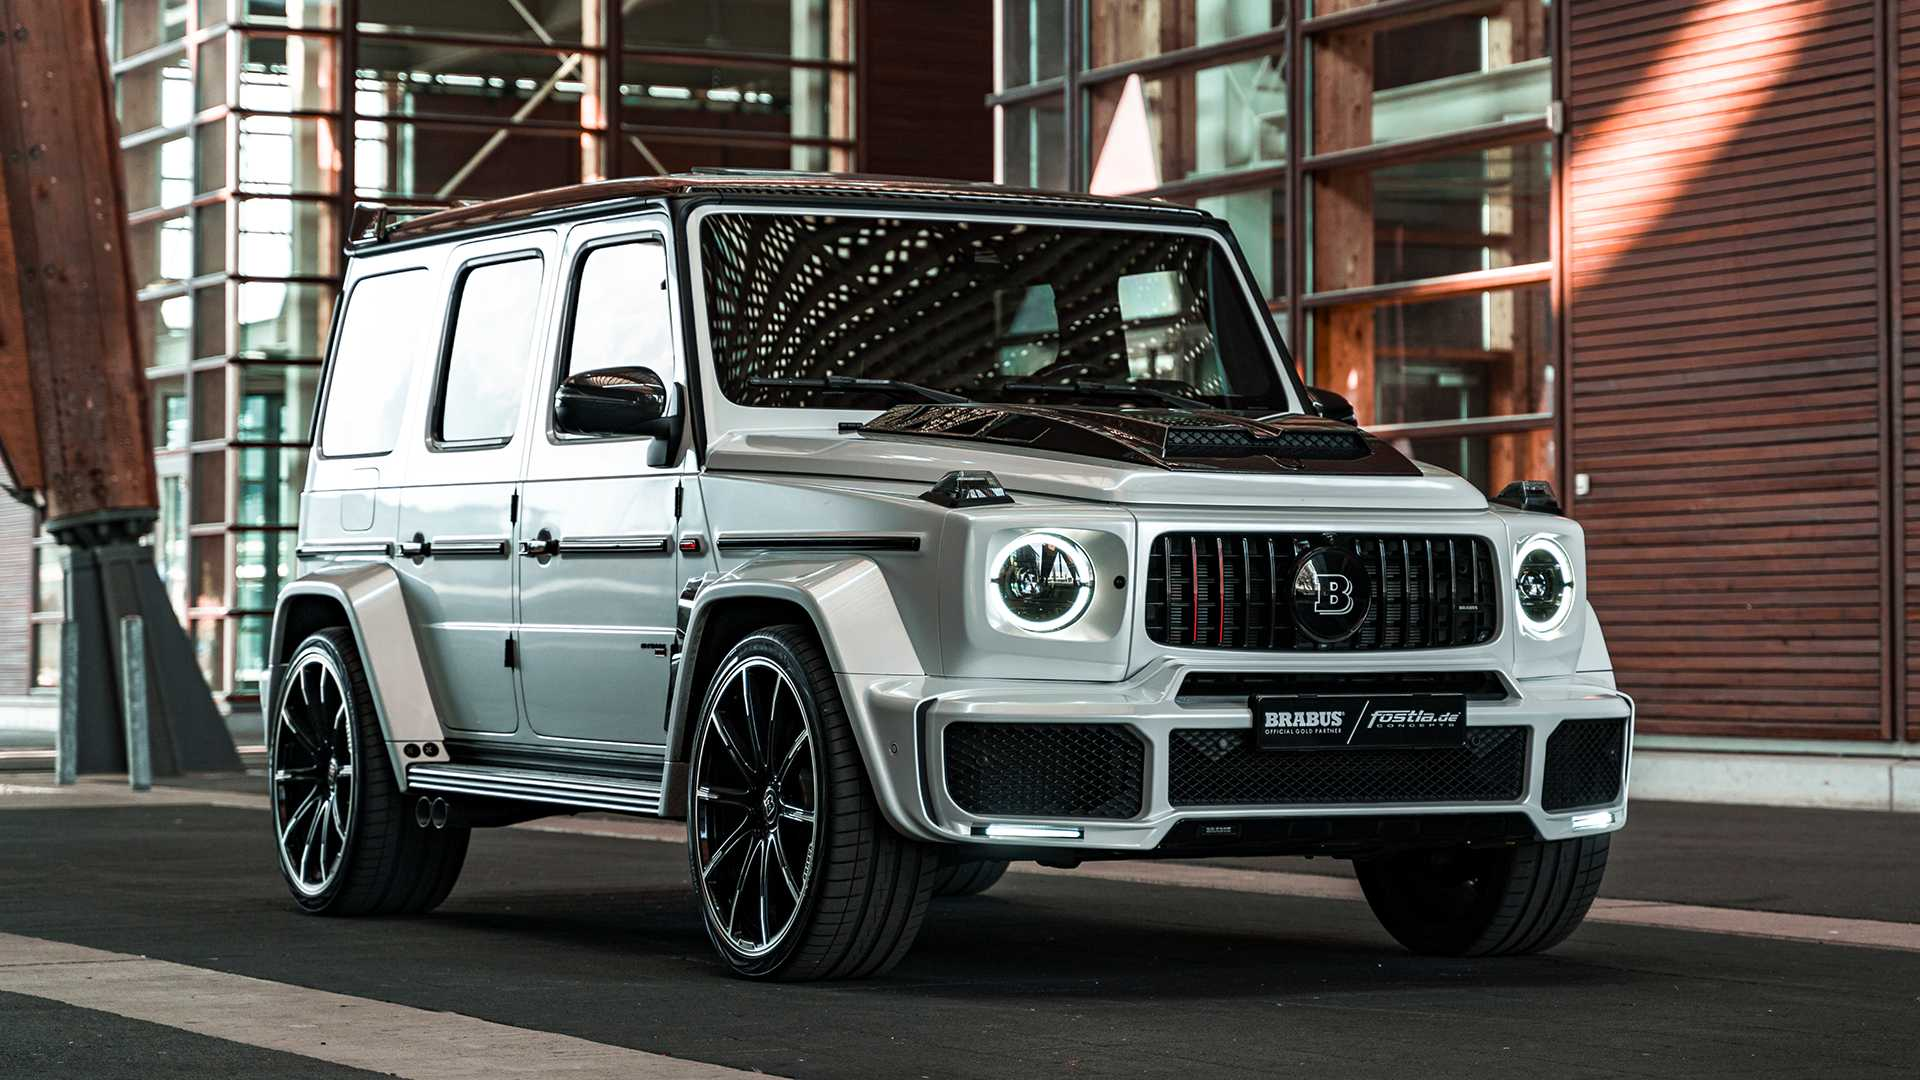 With 585 horsepower at the crank, the Mercedes-AMG G 63 is quite impressive as it is, and things get even wilder with the Brabus 700 Widestar tuning. For those who want even more, though, Fostla has a solution.